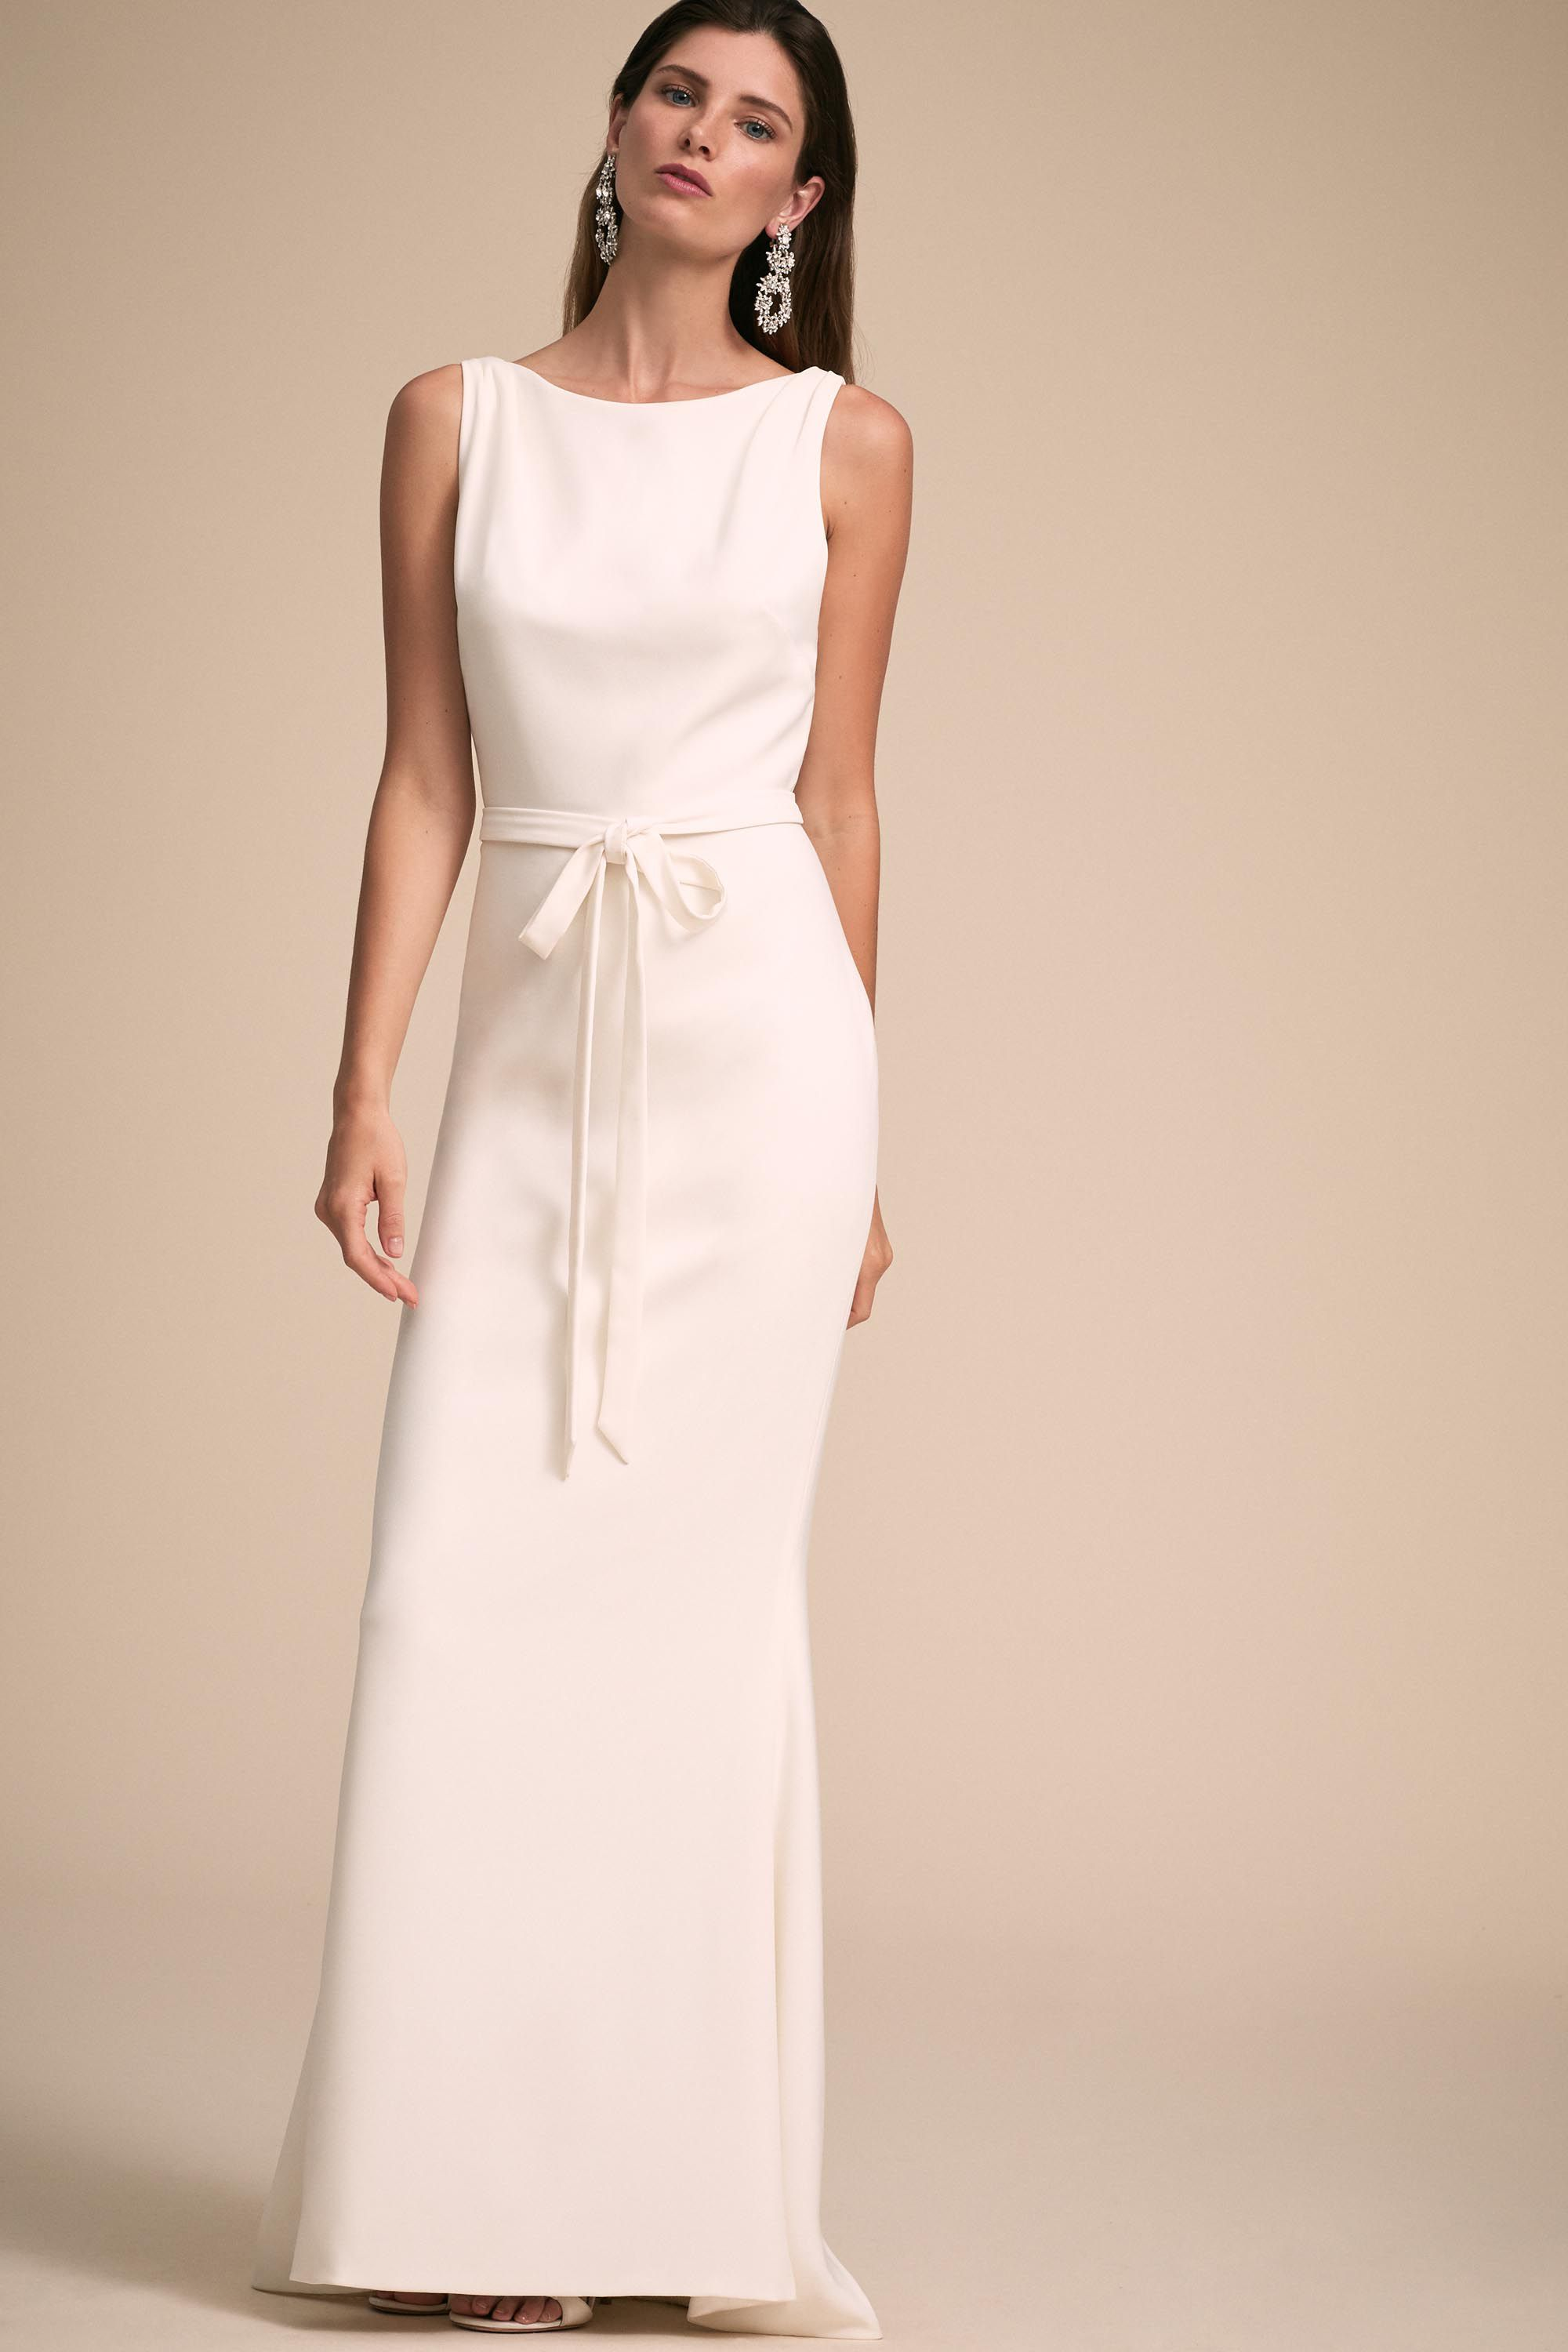 Arley Gown